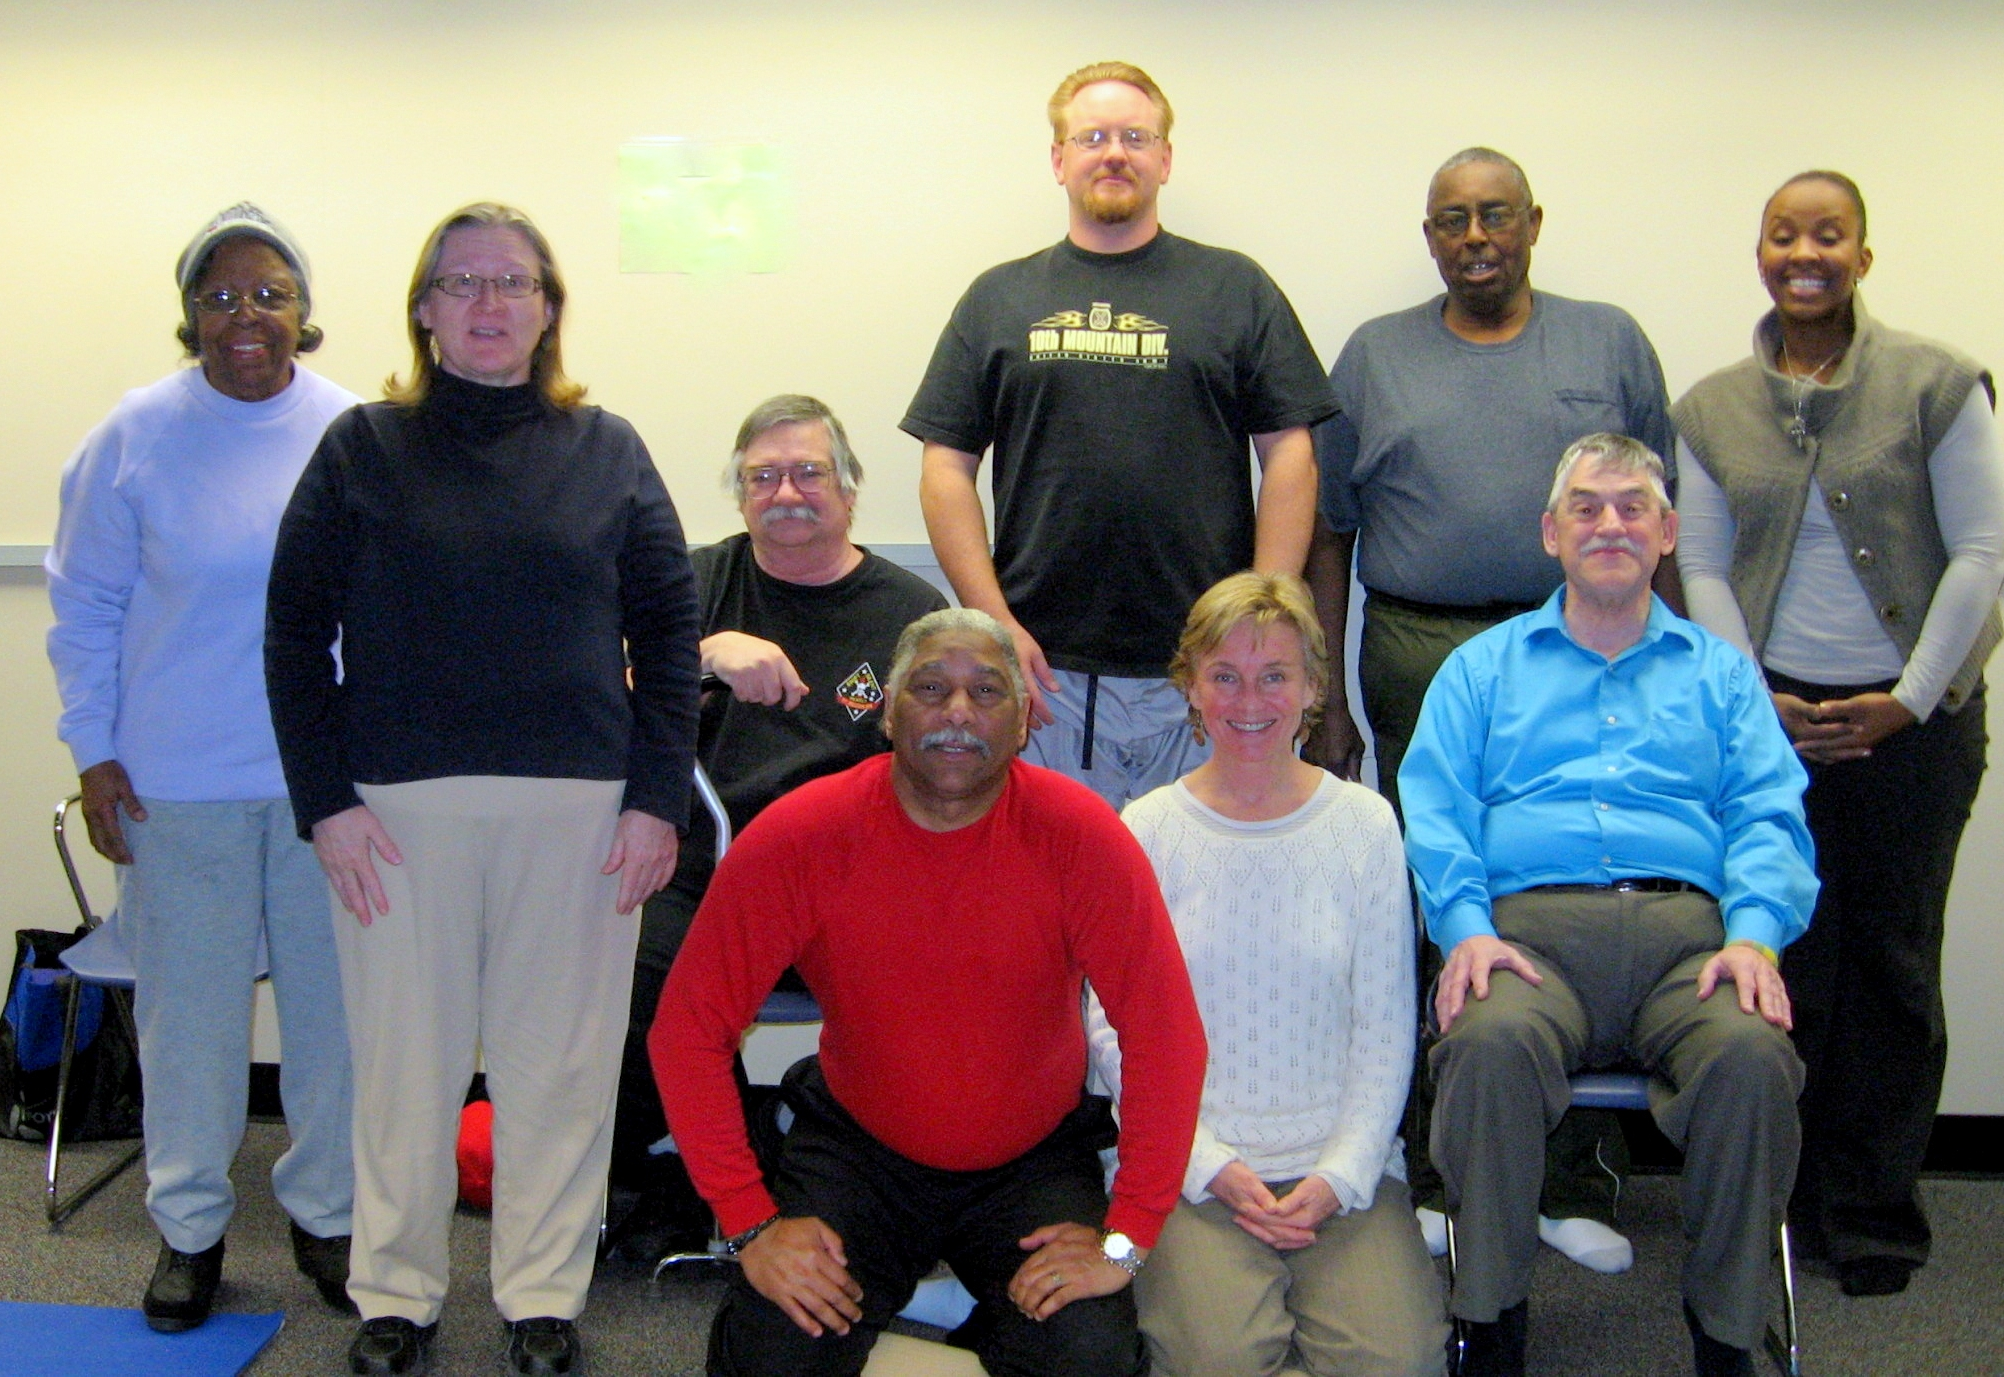 One of our 17 cohorts in our Pain Syndrome study - happy to pose for a group photo after 12 classes together. 2014